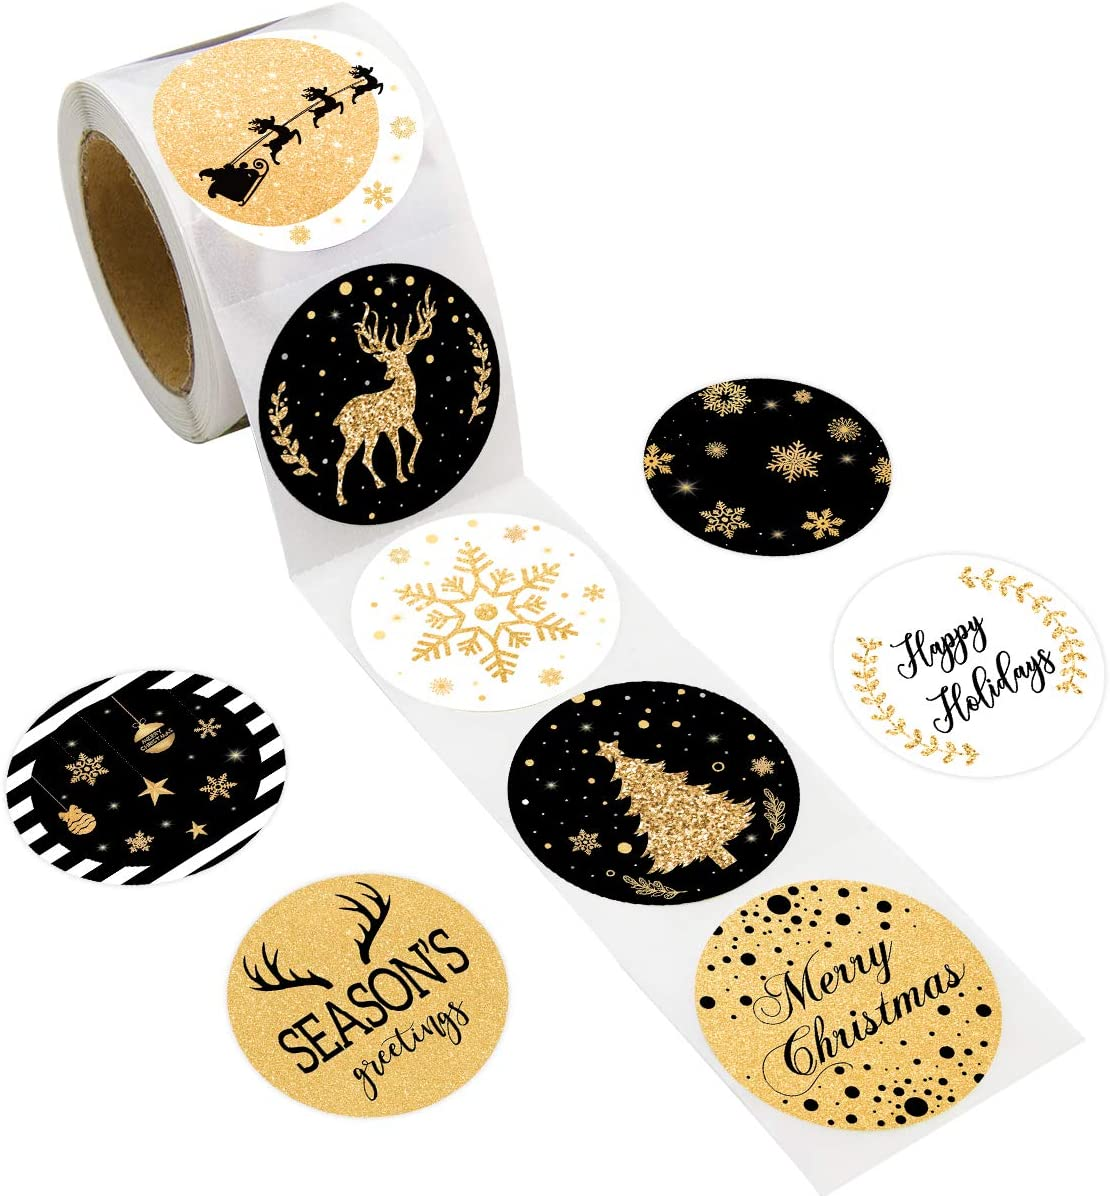 Christmas Stickers Labels 500PCS Black & Gold Faux Glitter Christmas Tags for Holiday Christmas Party Decoration